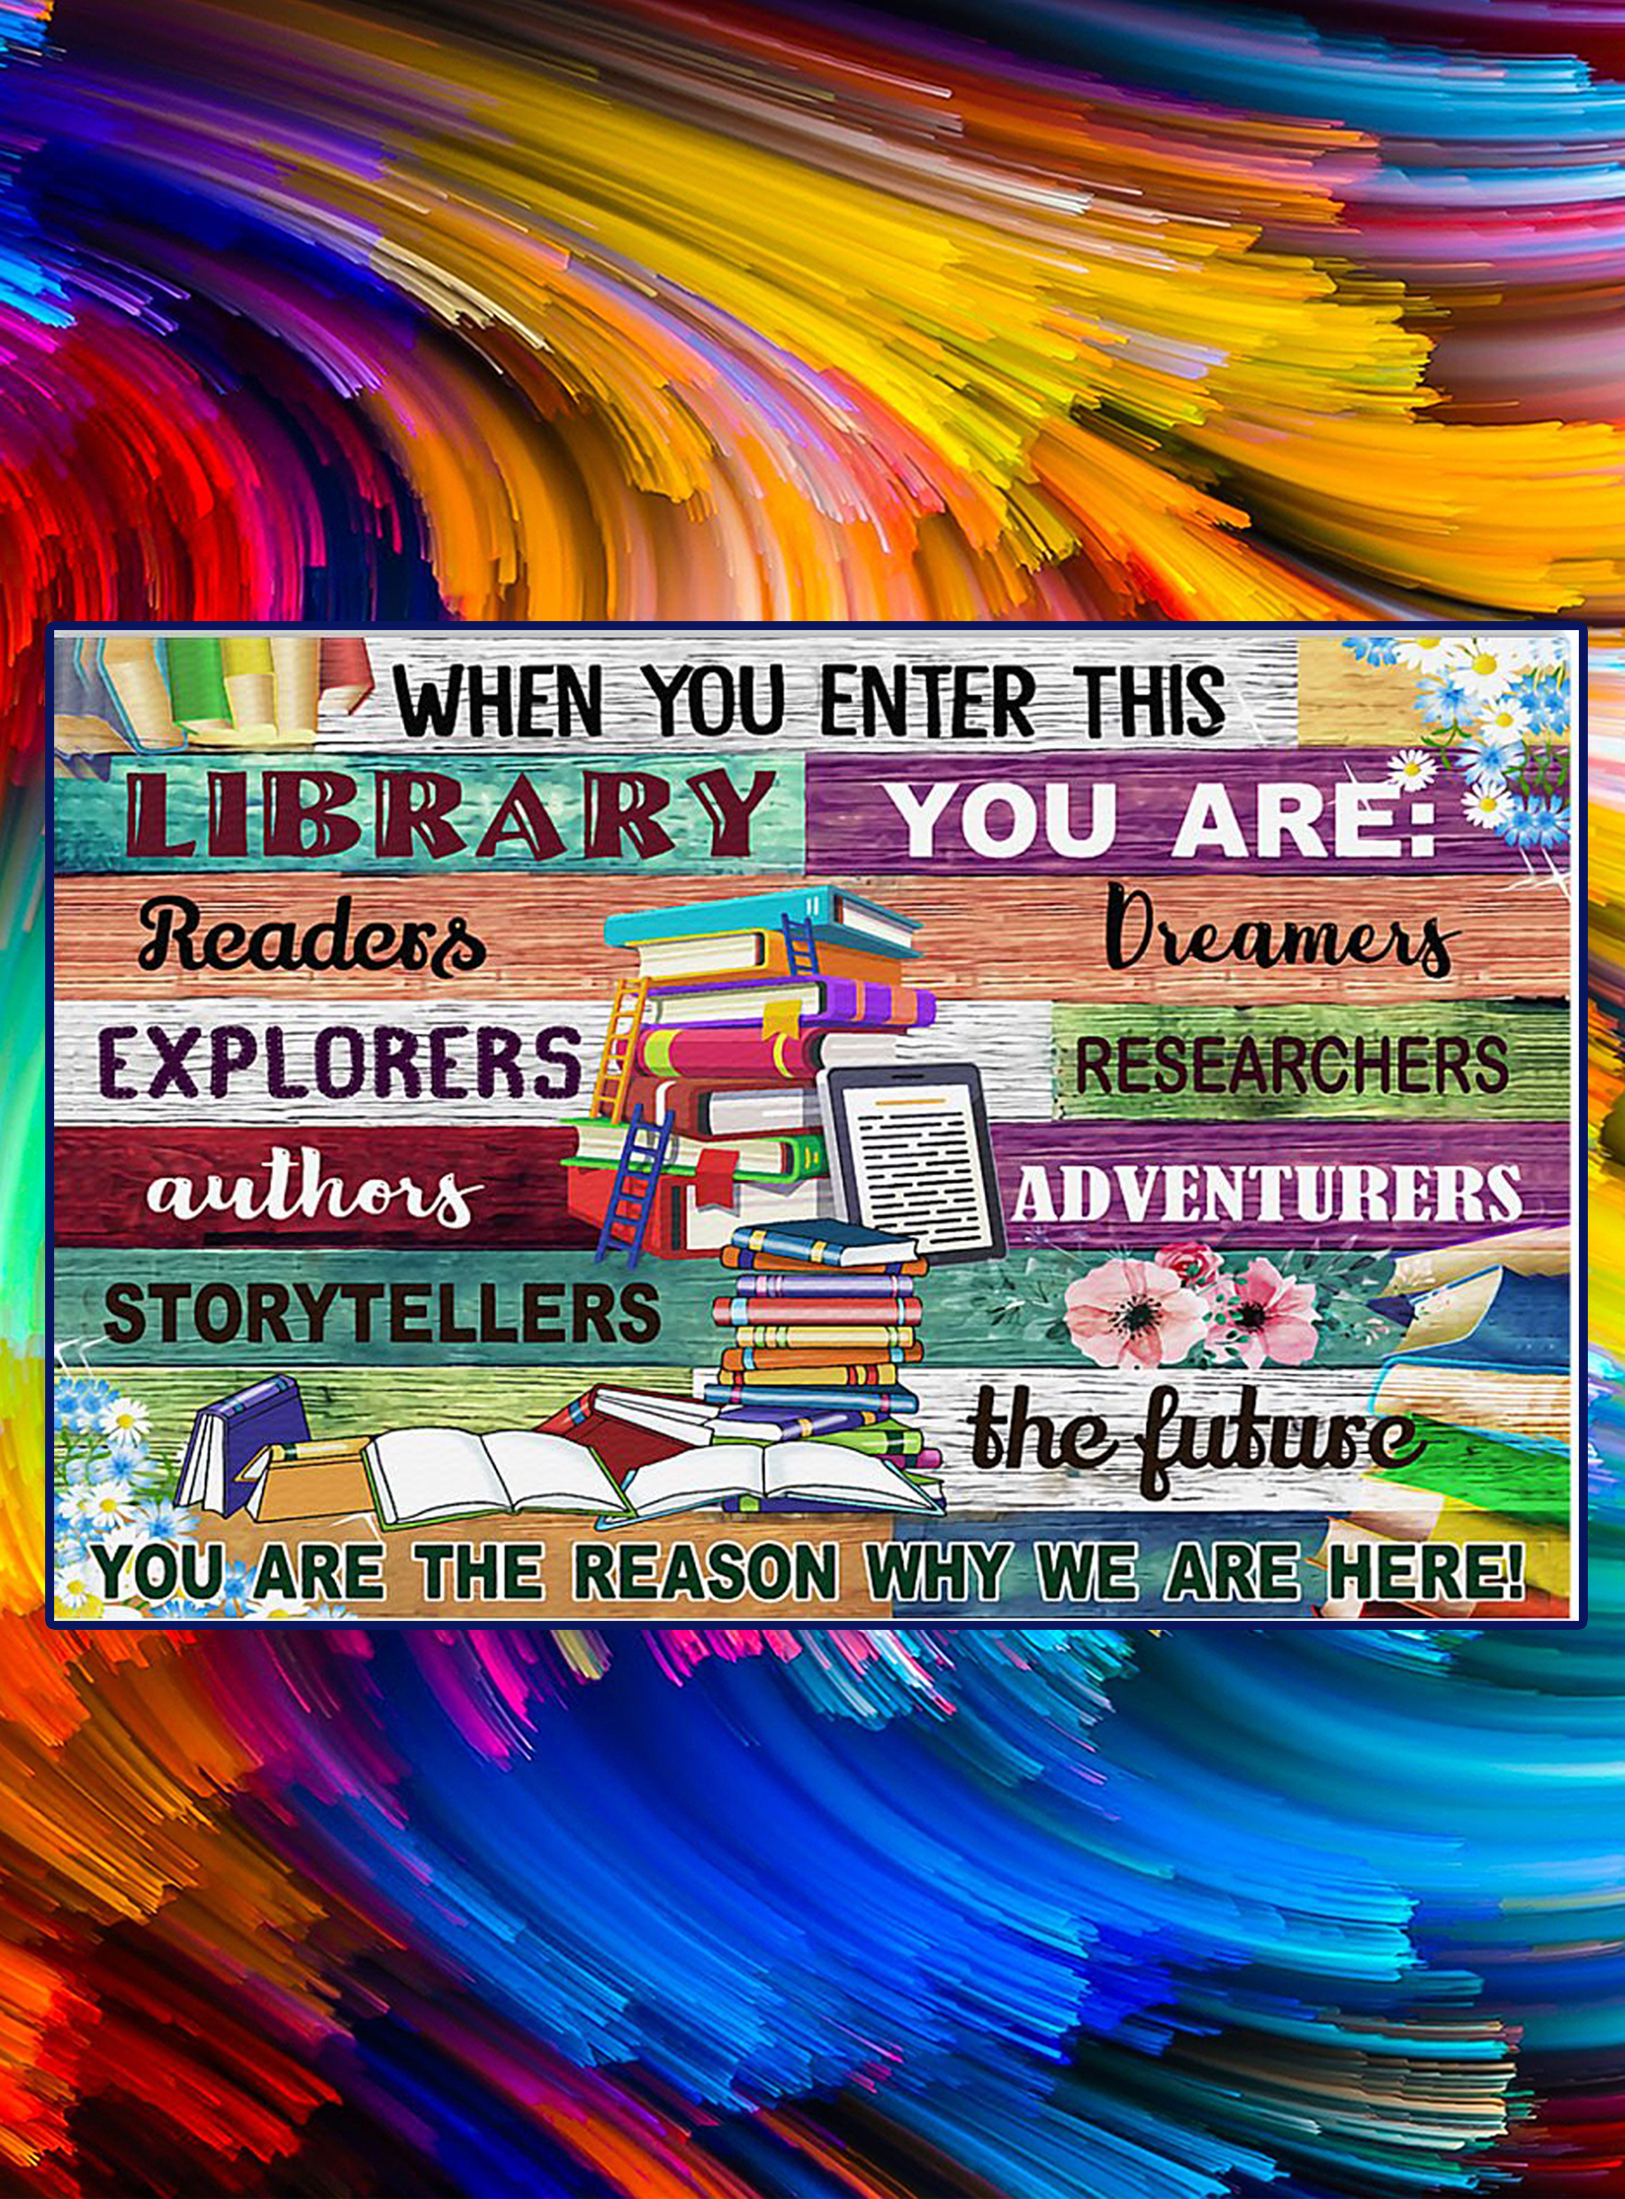 Librarian When you enter this library you are the reason why we are here poster - A3